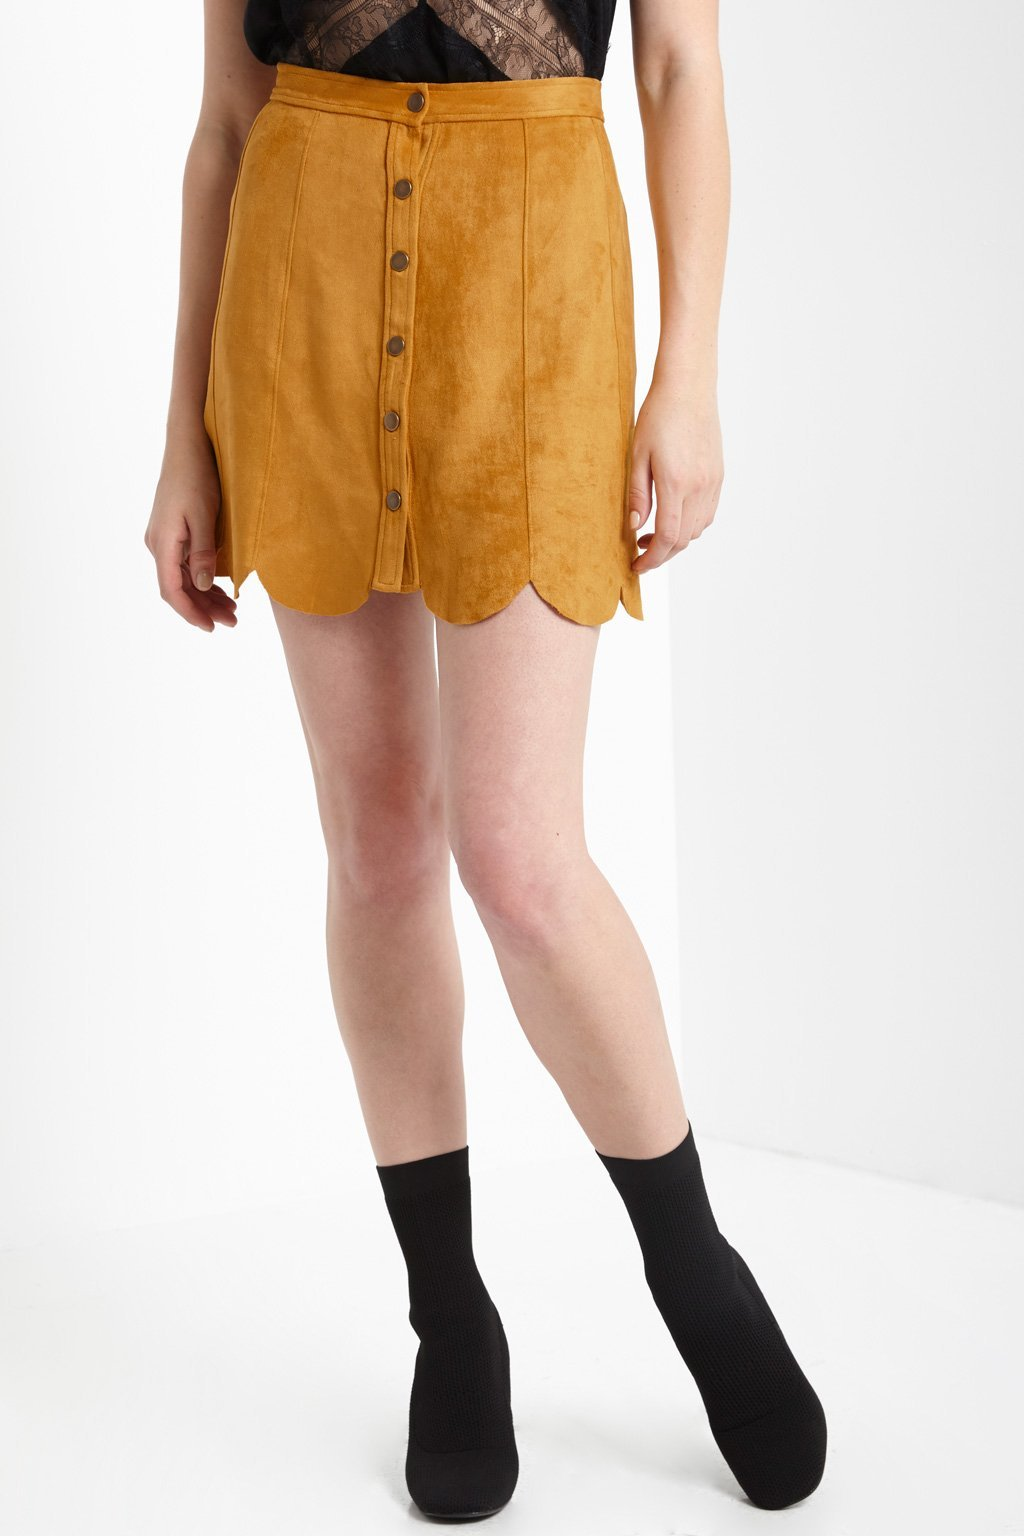 Poshsquare Skirts Lush Suede Scalloped Skirt